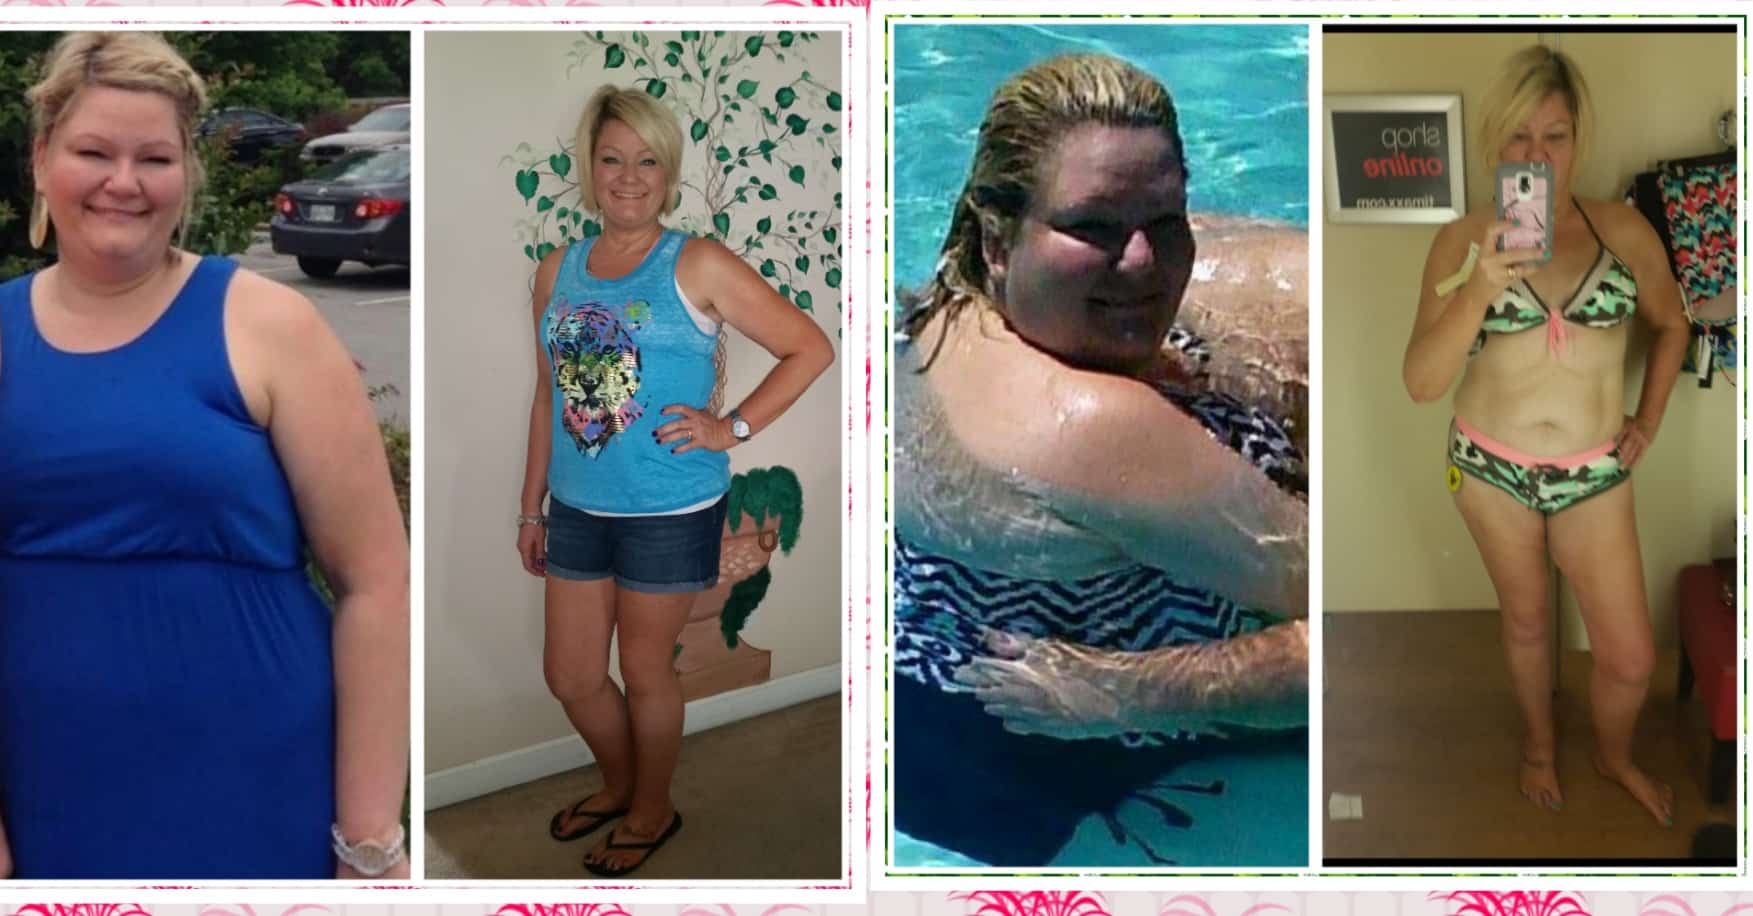 Cherie lost 90 pounds and so can you! #successstory #gethealthyu